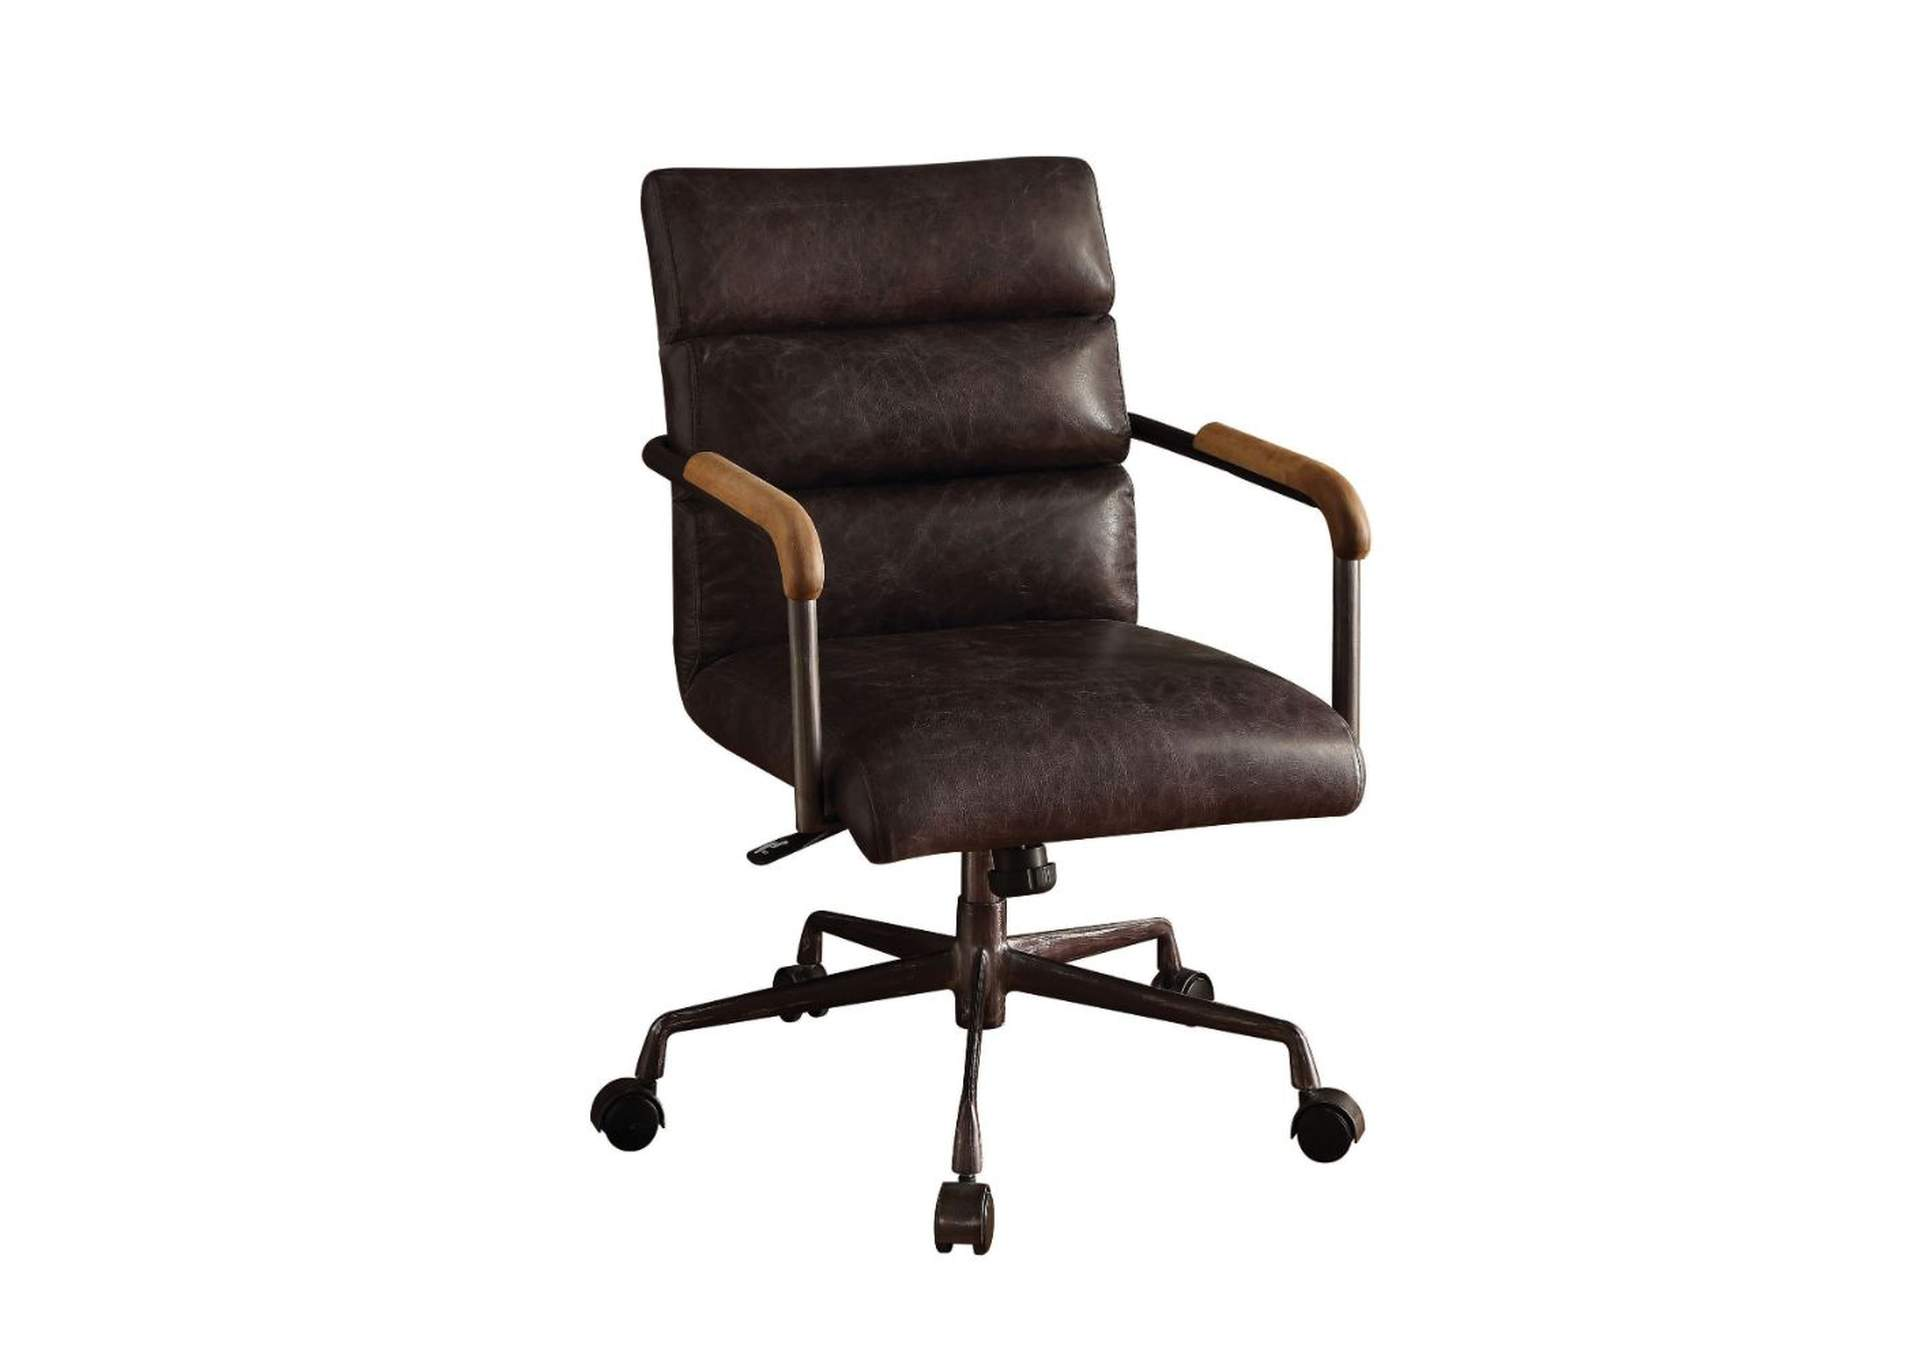 Harith Antique Slate Office Chair,Acme